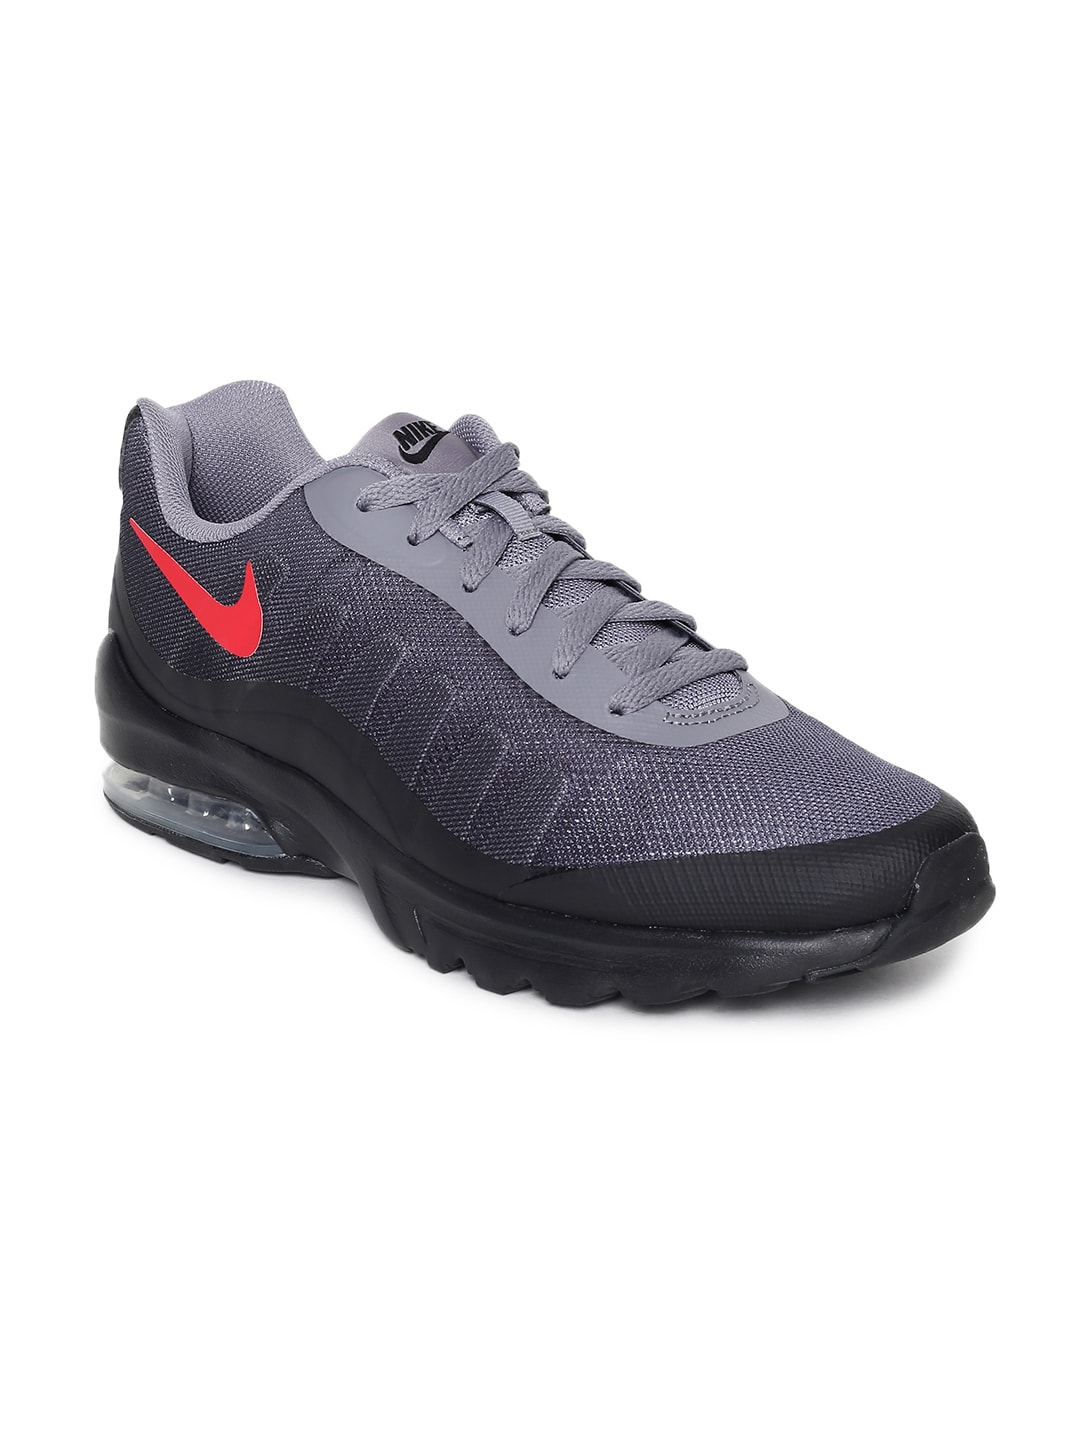 47220aae358 Nike Air Max Shoes - Buy Nike Air Max Shoes Online for Men   Women